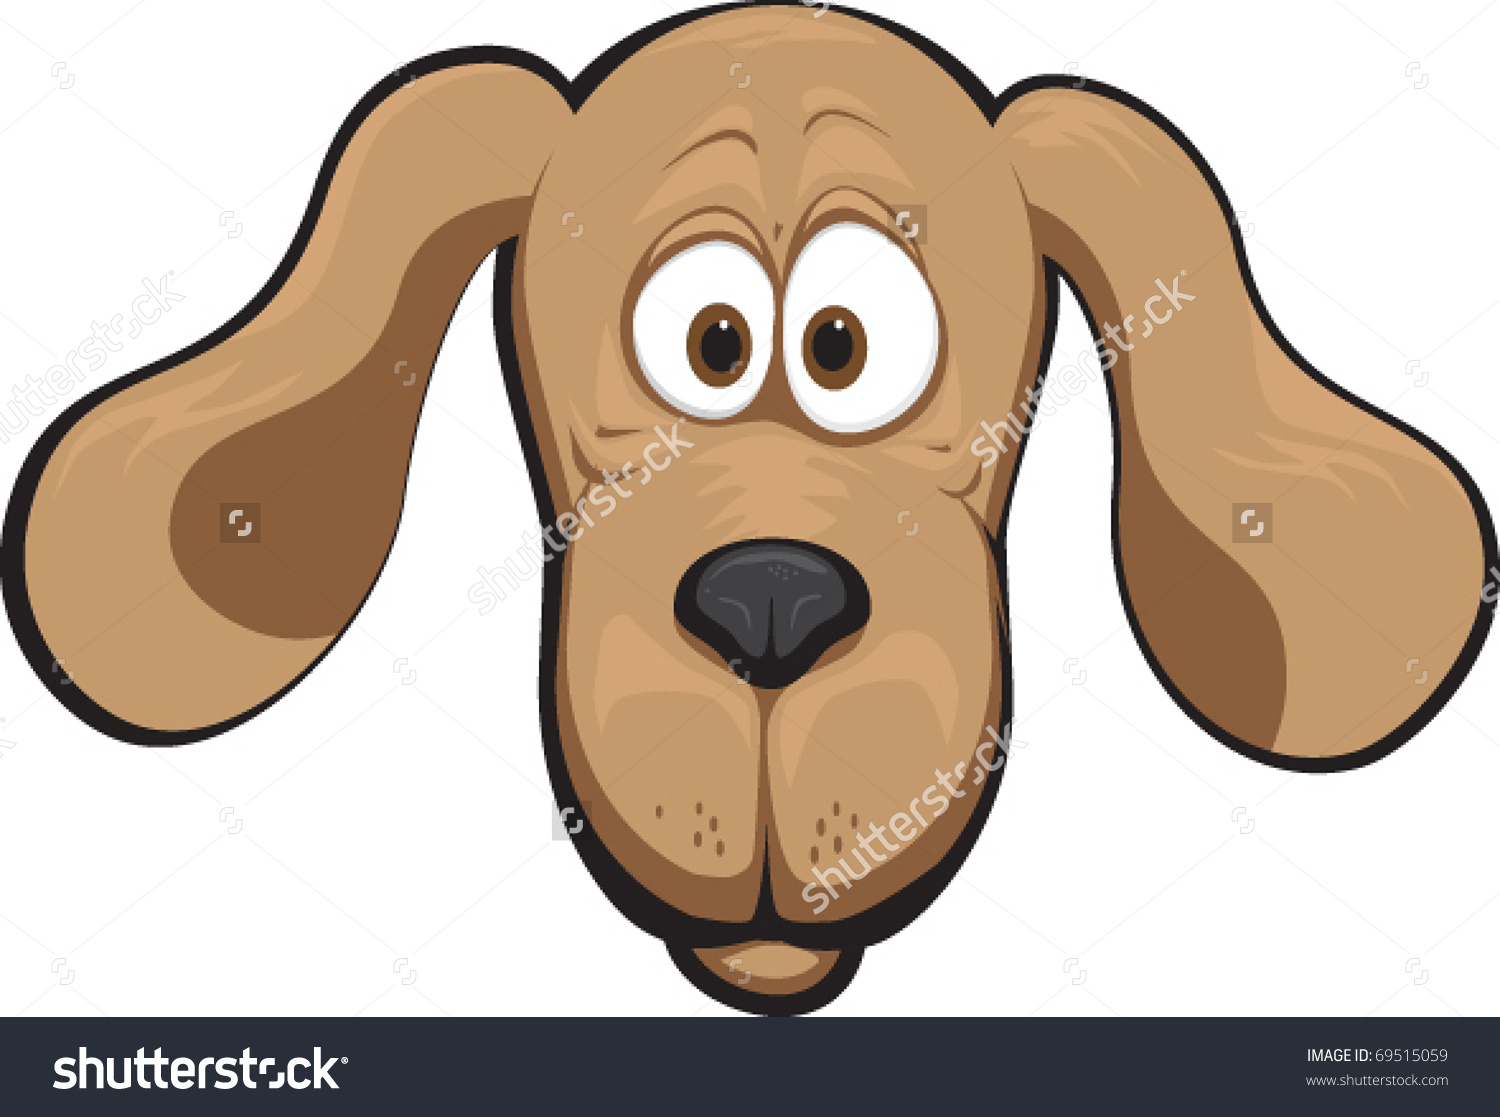 Floppy dog ear clipart.